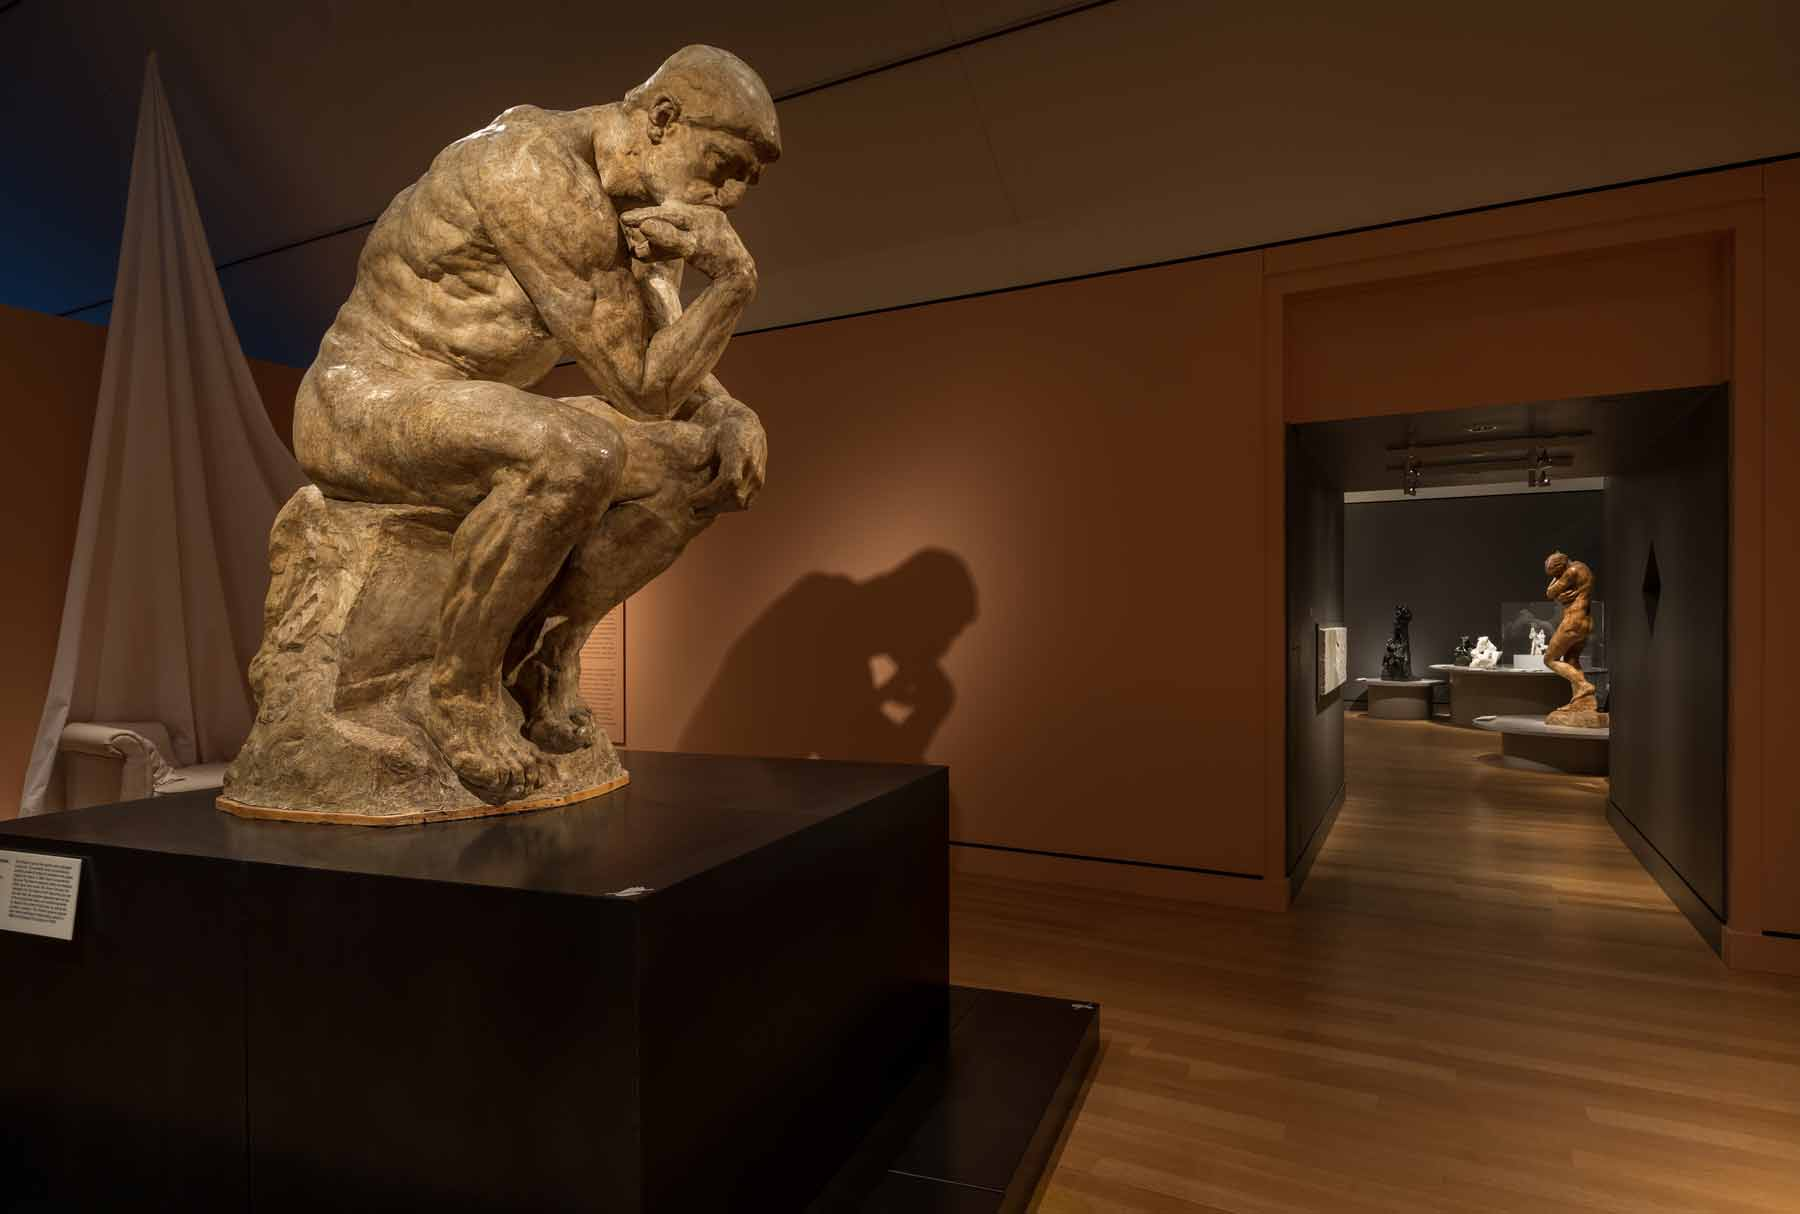 The Thinker at PEM